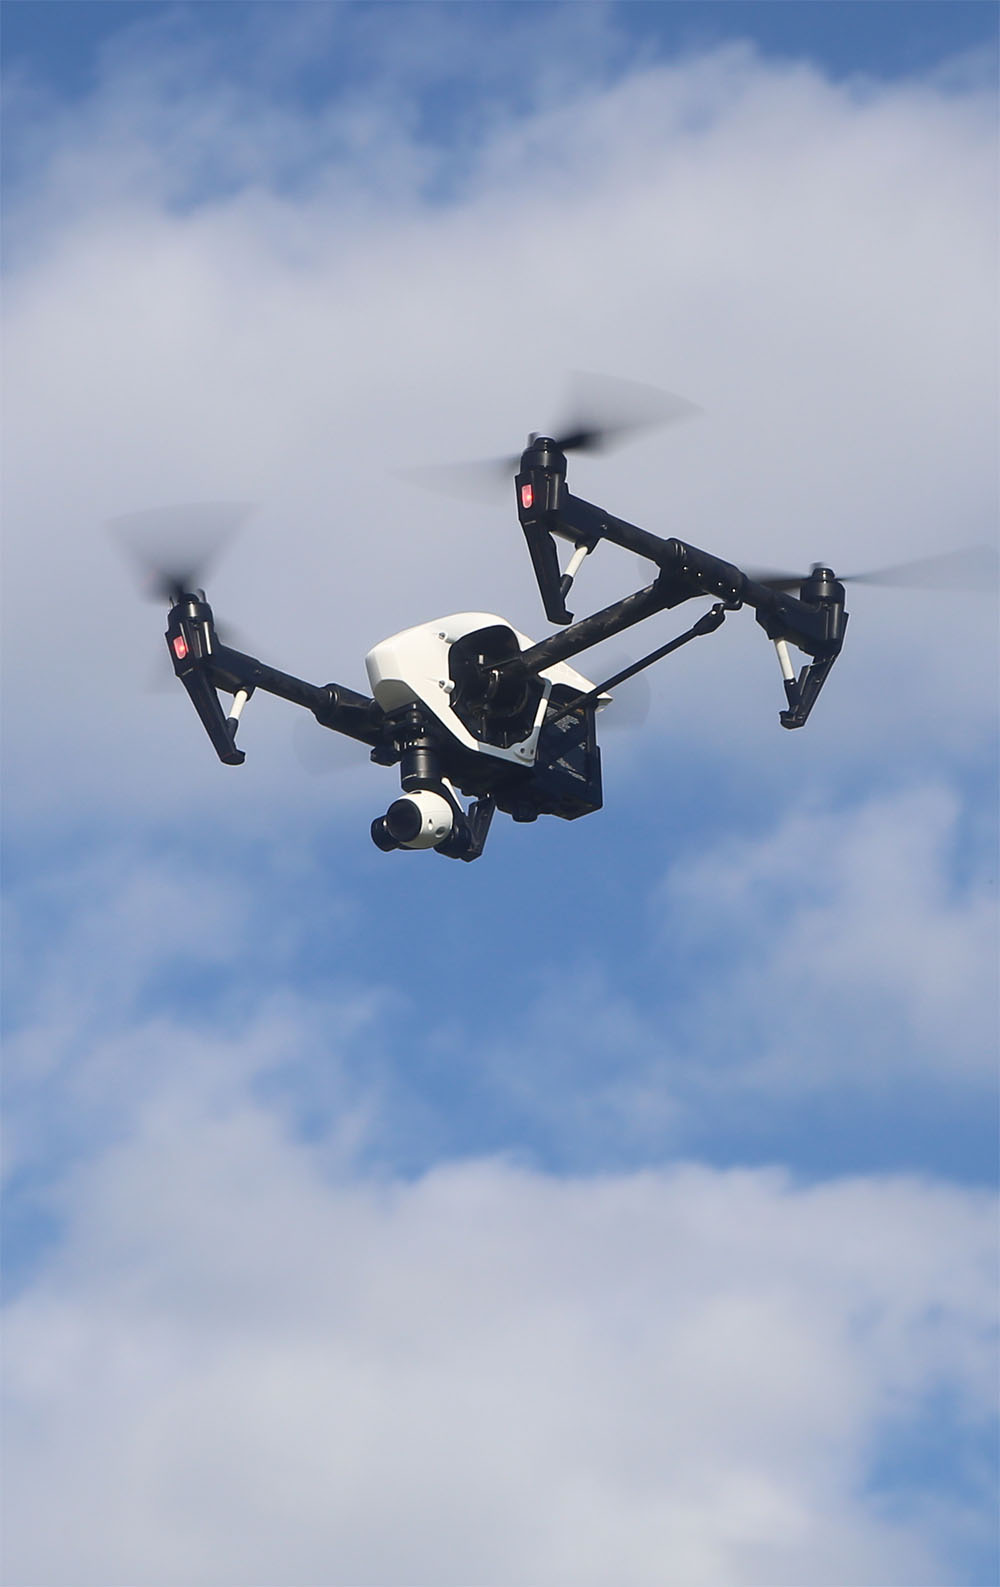 Inspire 1 in Flight